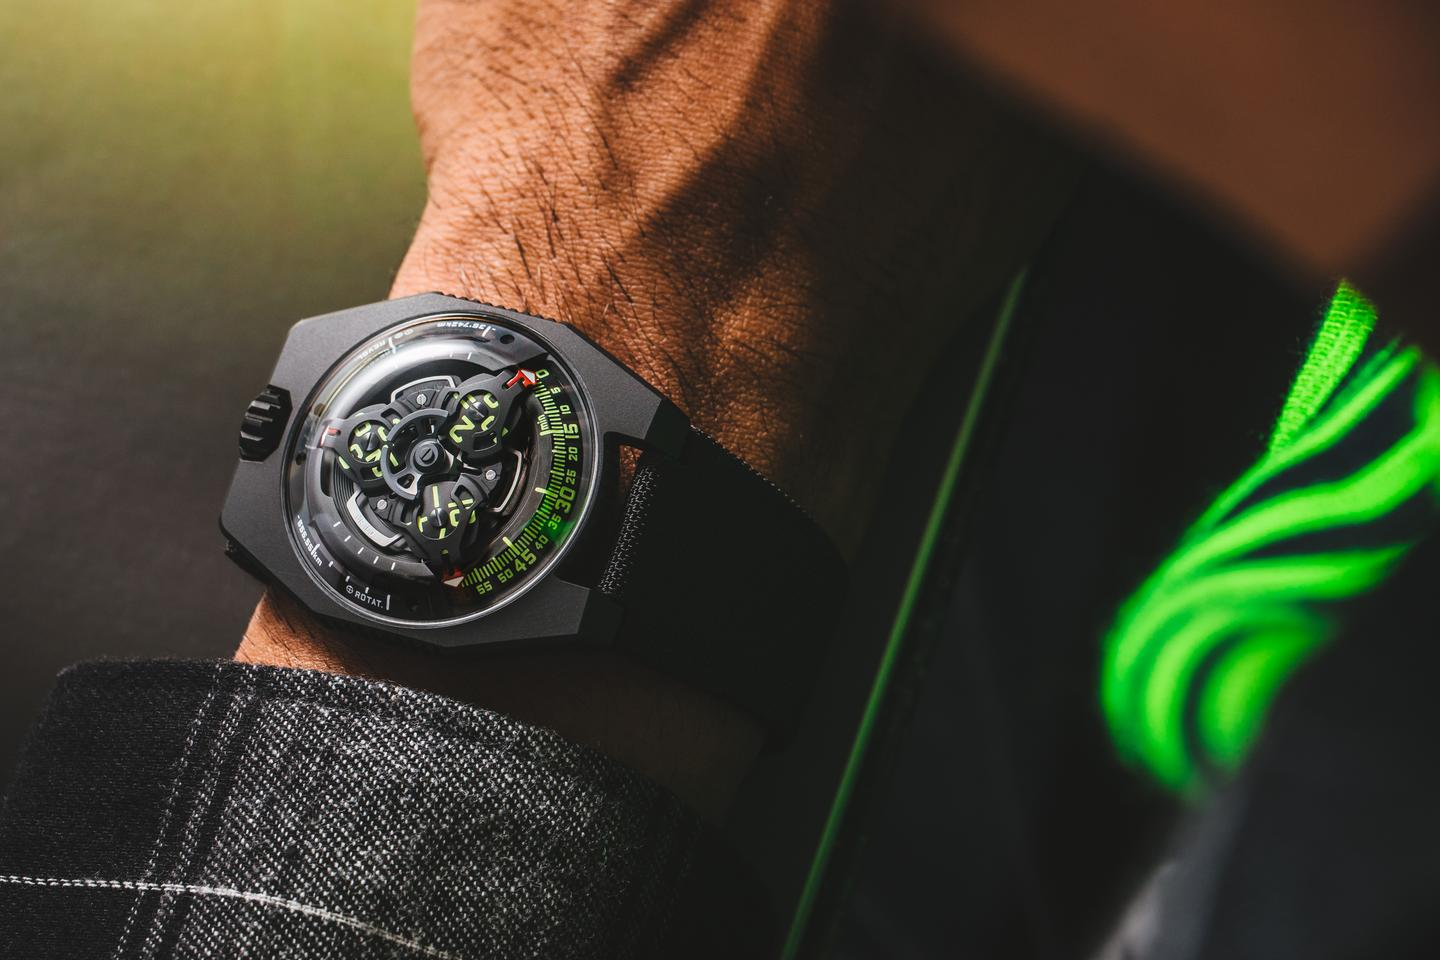 The Urwerk UR-100 SpaceTime is being released in a total of 50 units